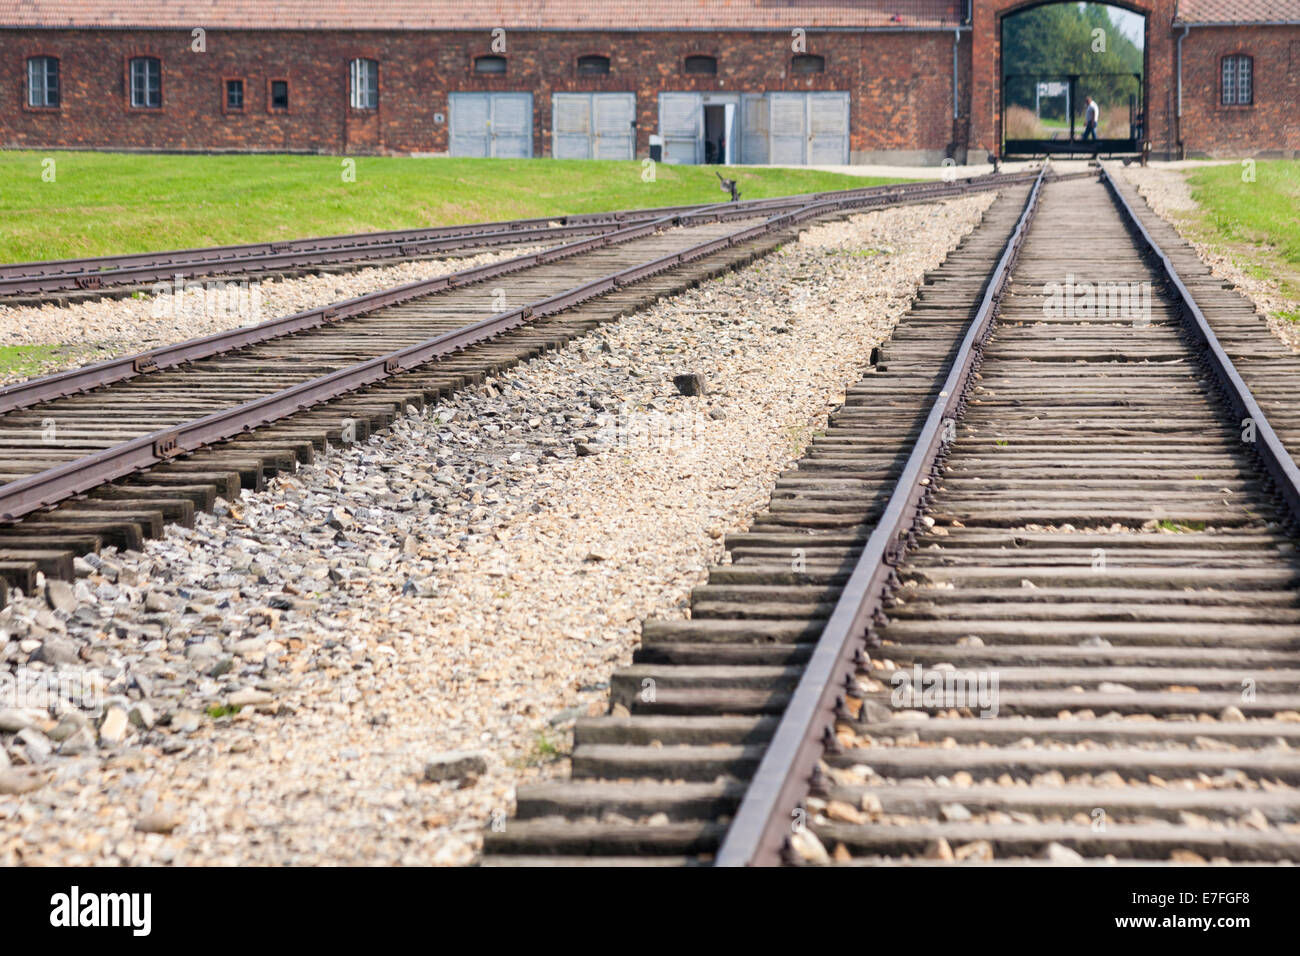 rail tracks leading to entrance gate at the Auschwitz-Birkenau concentration camp, Auschwitz, Poland - Stock Image